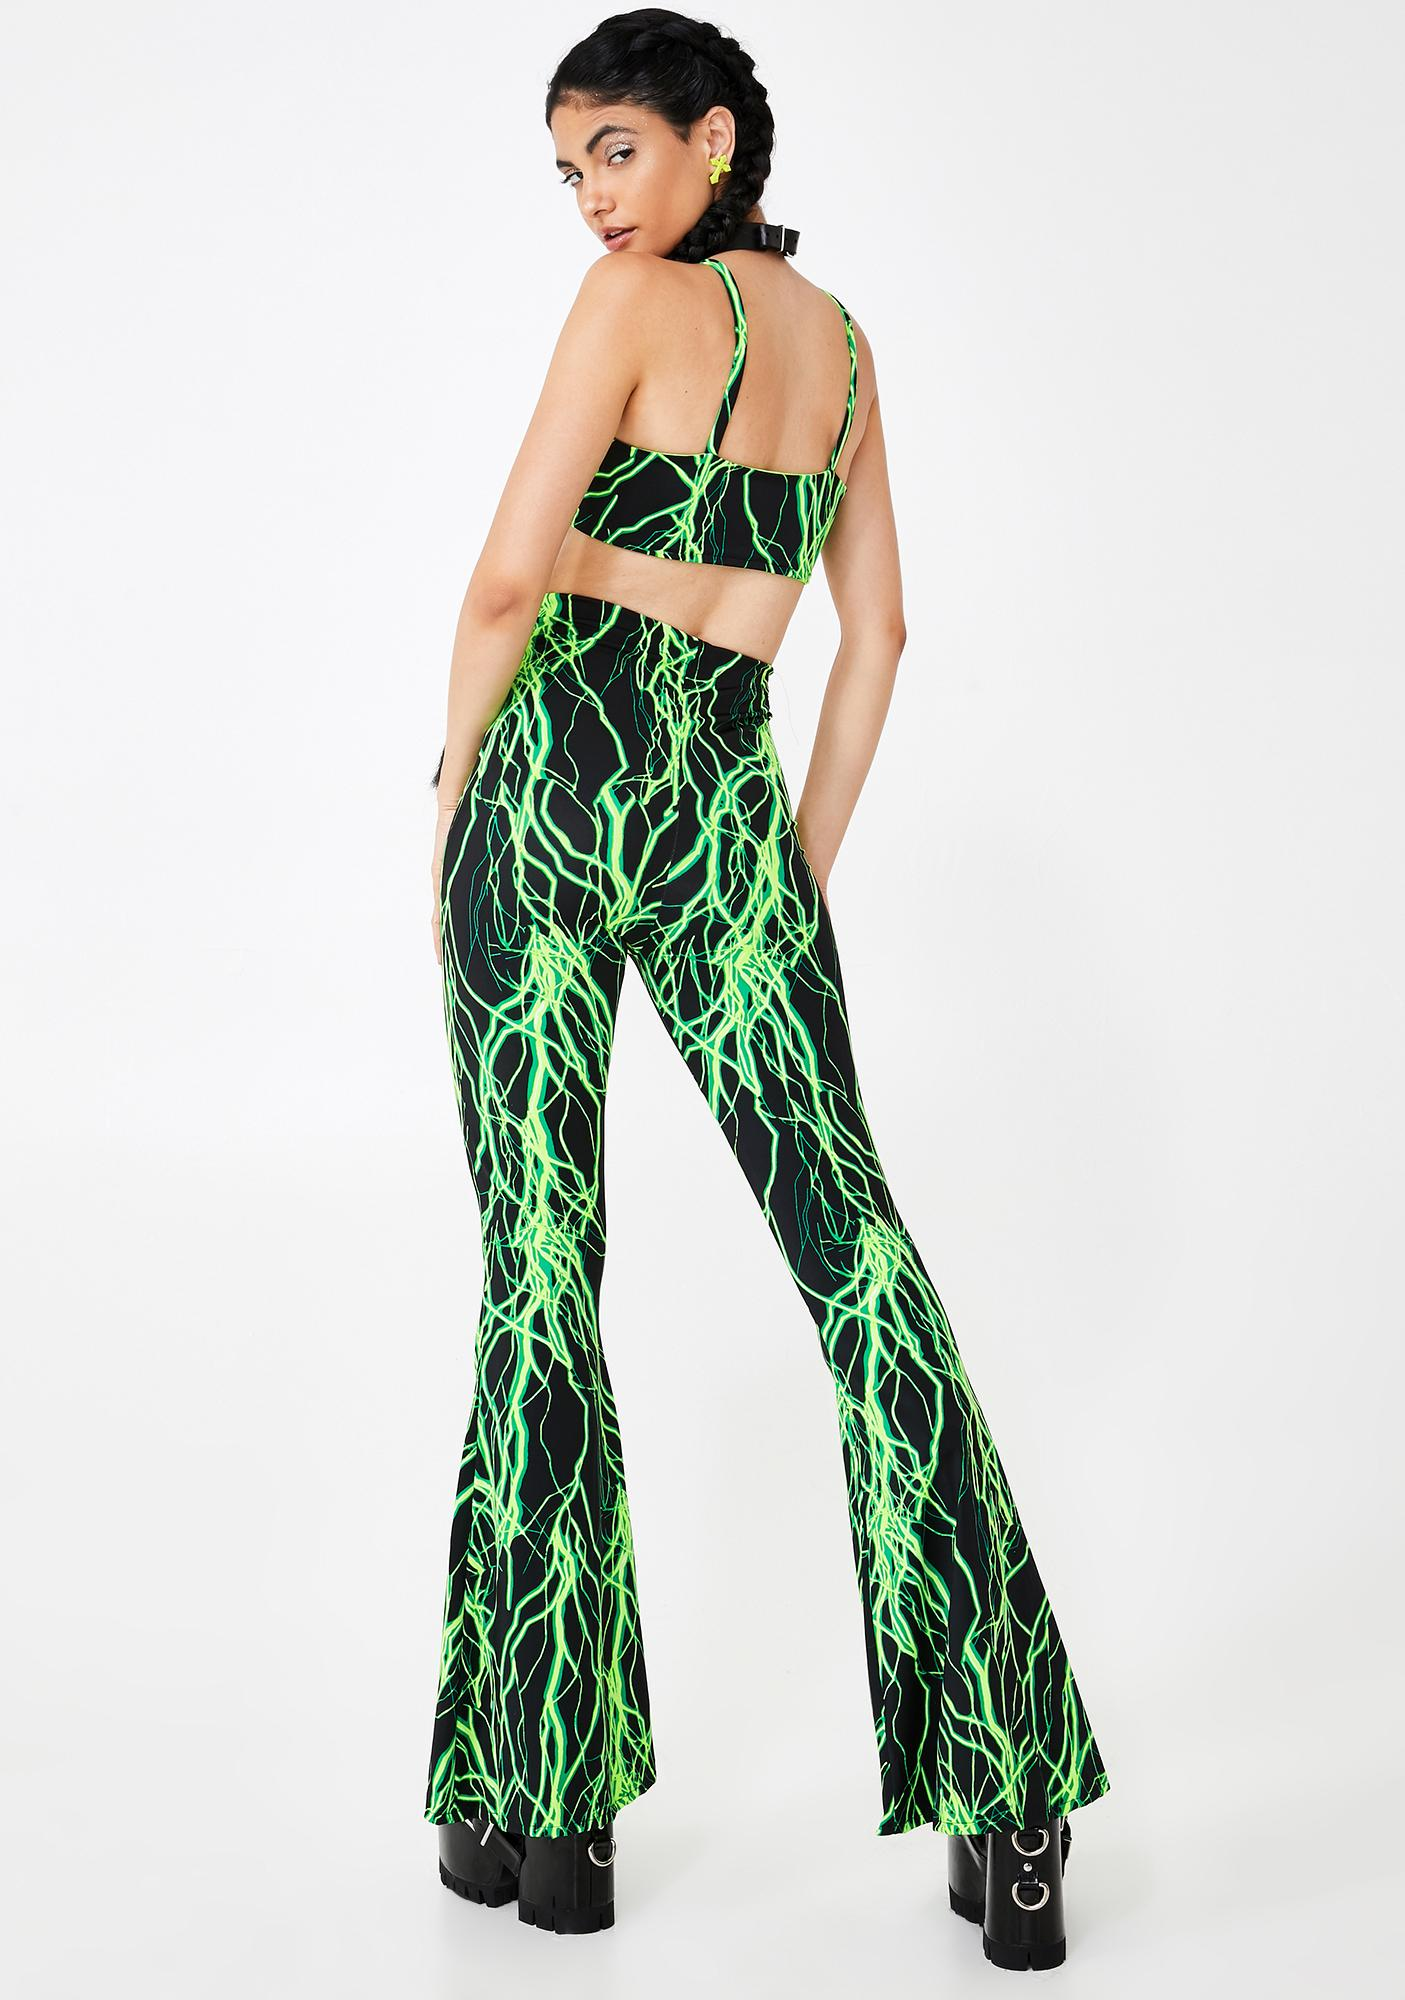 The Volt Limewire Flared Pants